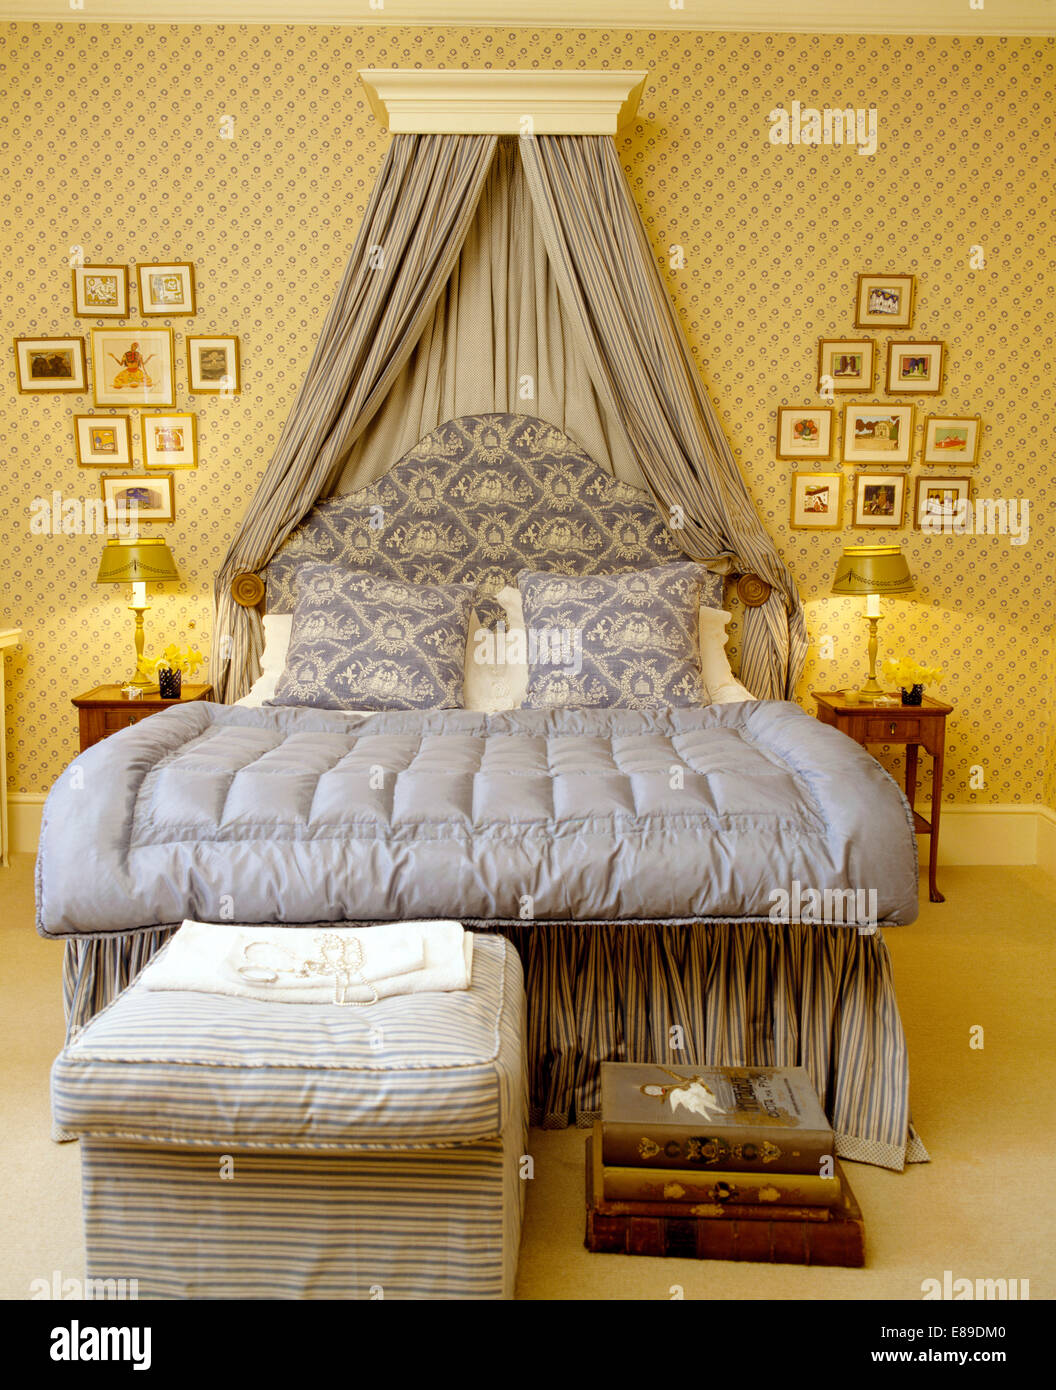 ideas modern drape canopy bed frames drapes decorate designs and bedroom room design coronet beds